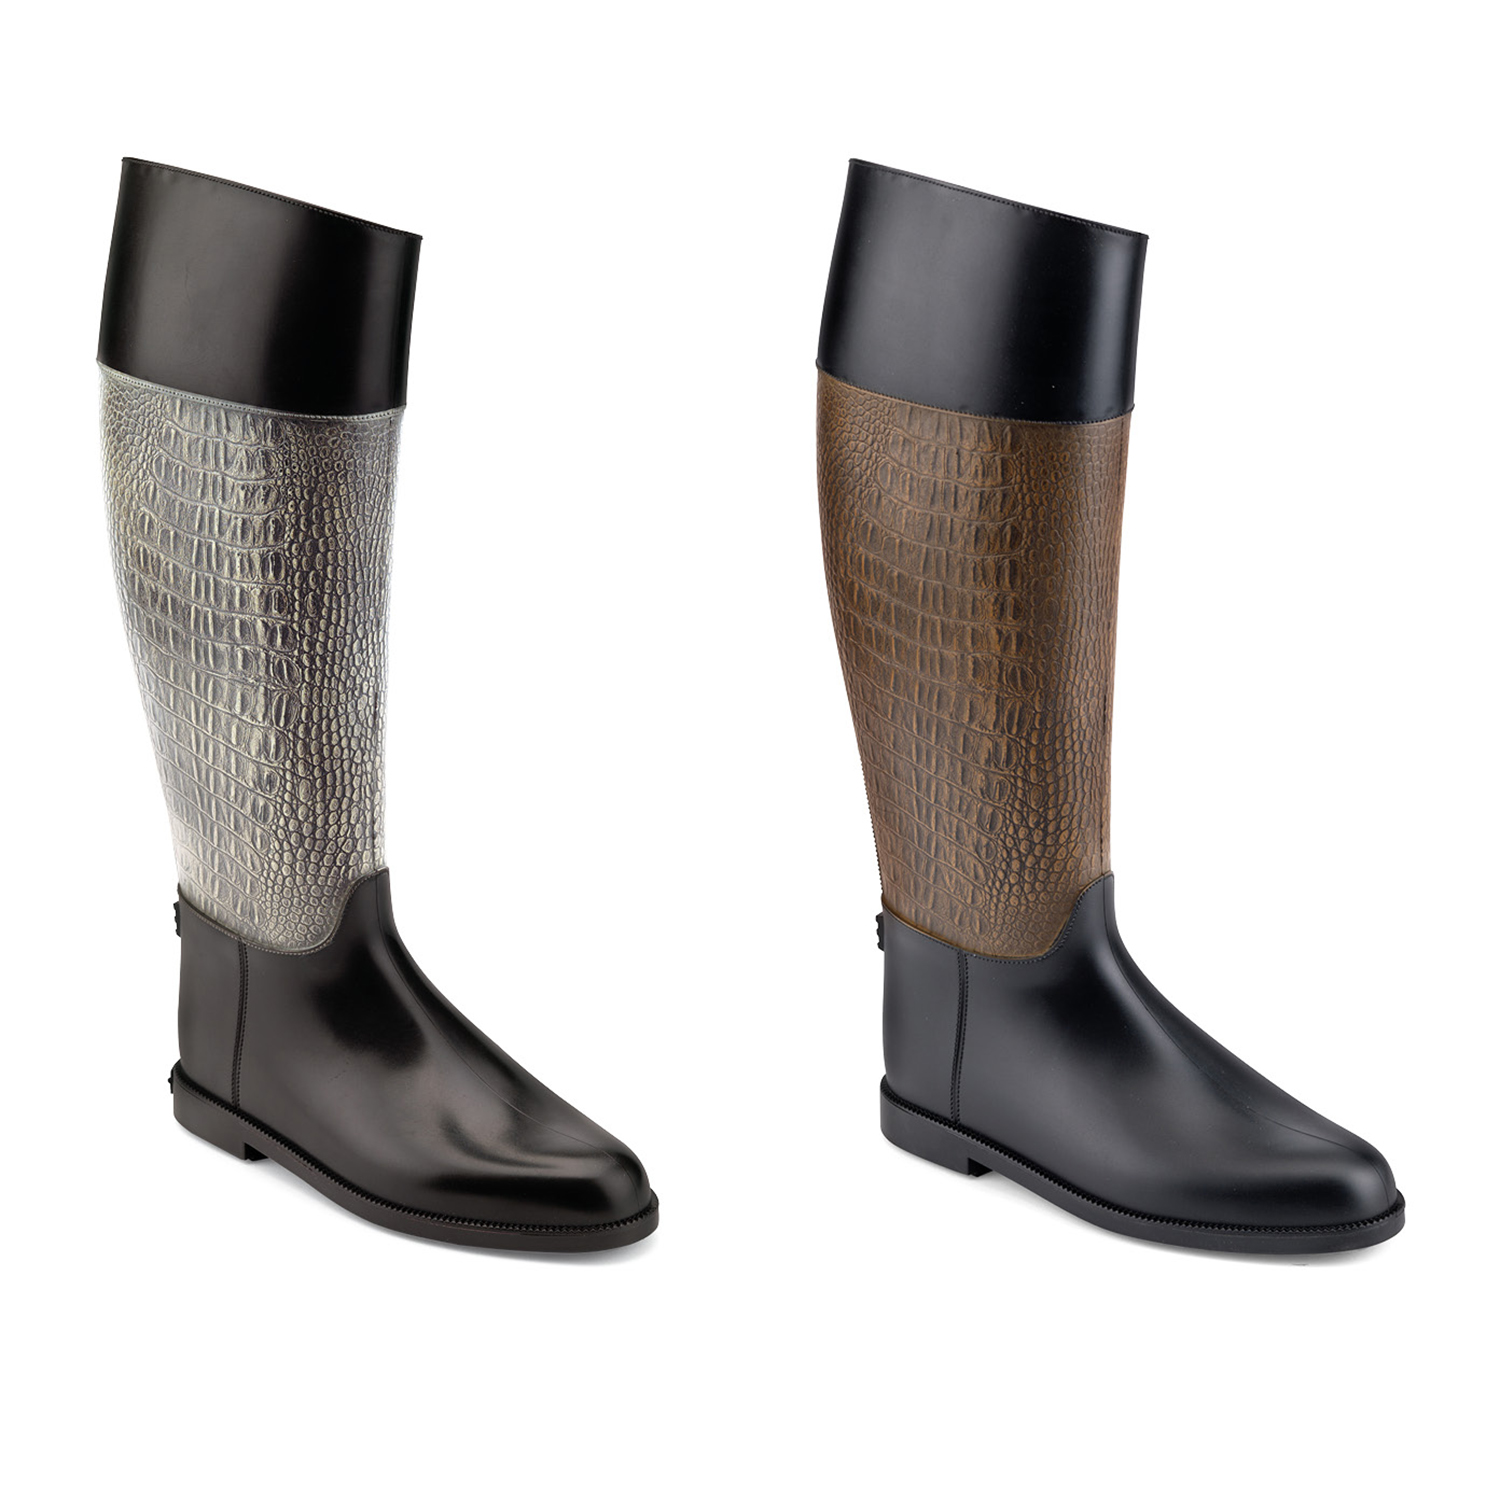 Coloured varnishing and antique brush finish enhancing the crocodile print on the pvc Riding boot model